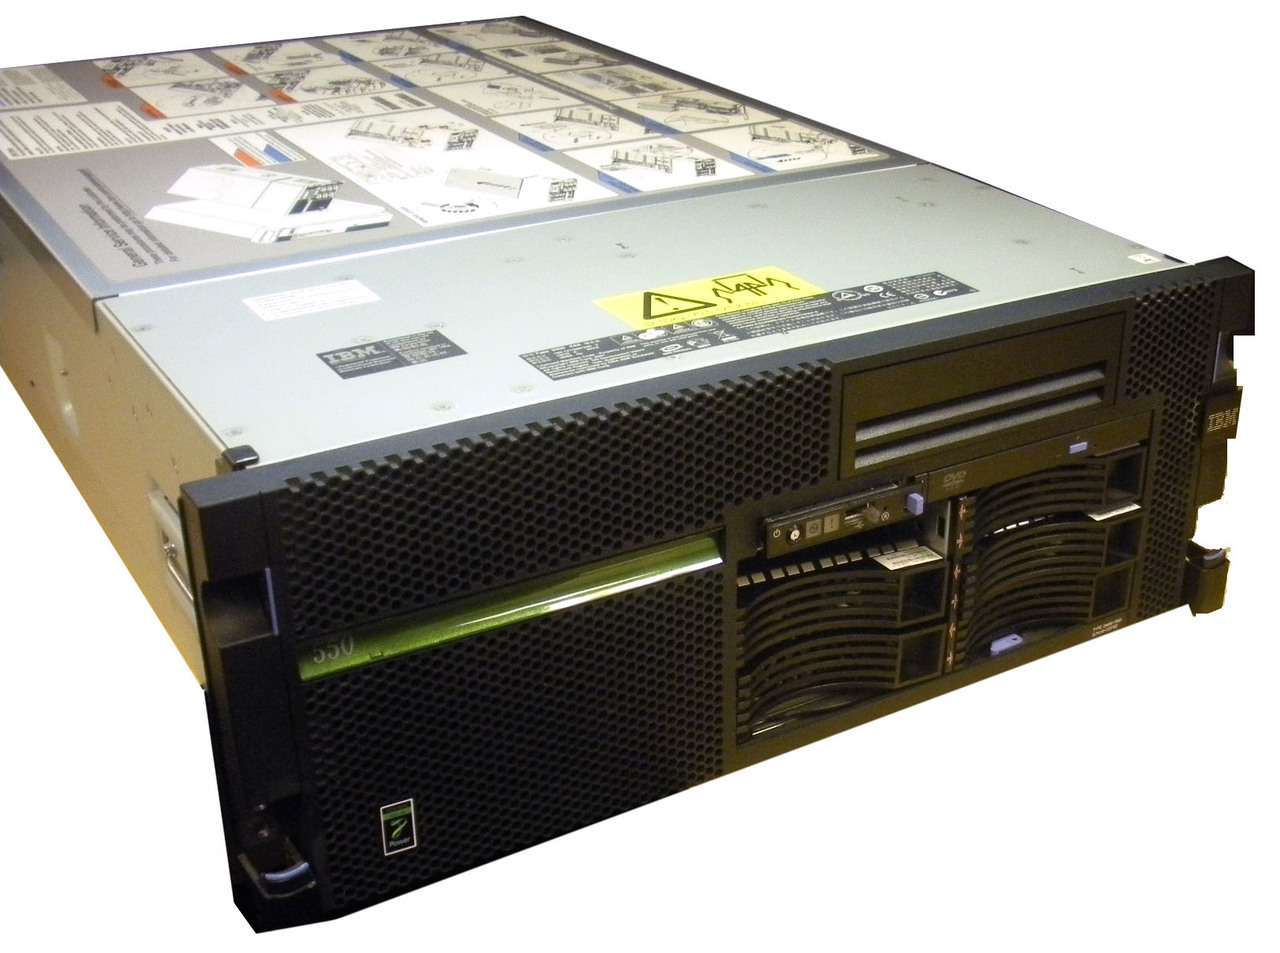 IBM Power 550 Express M50 End of Service Life Dates and Information